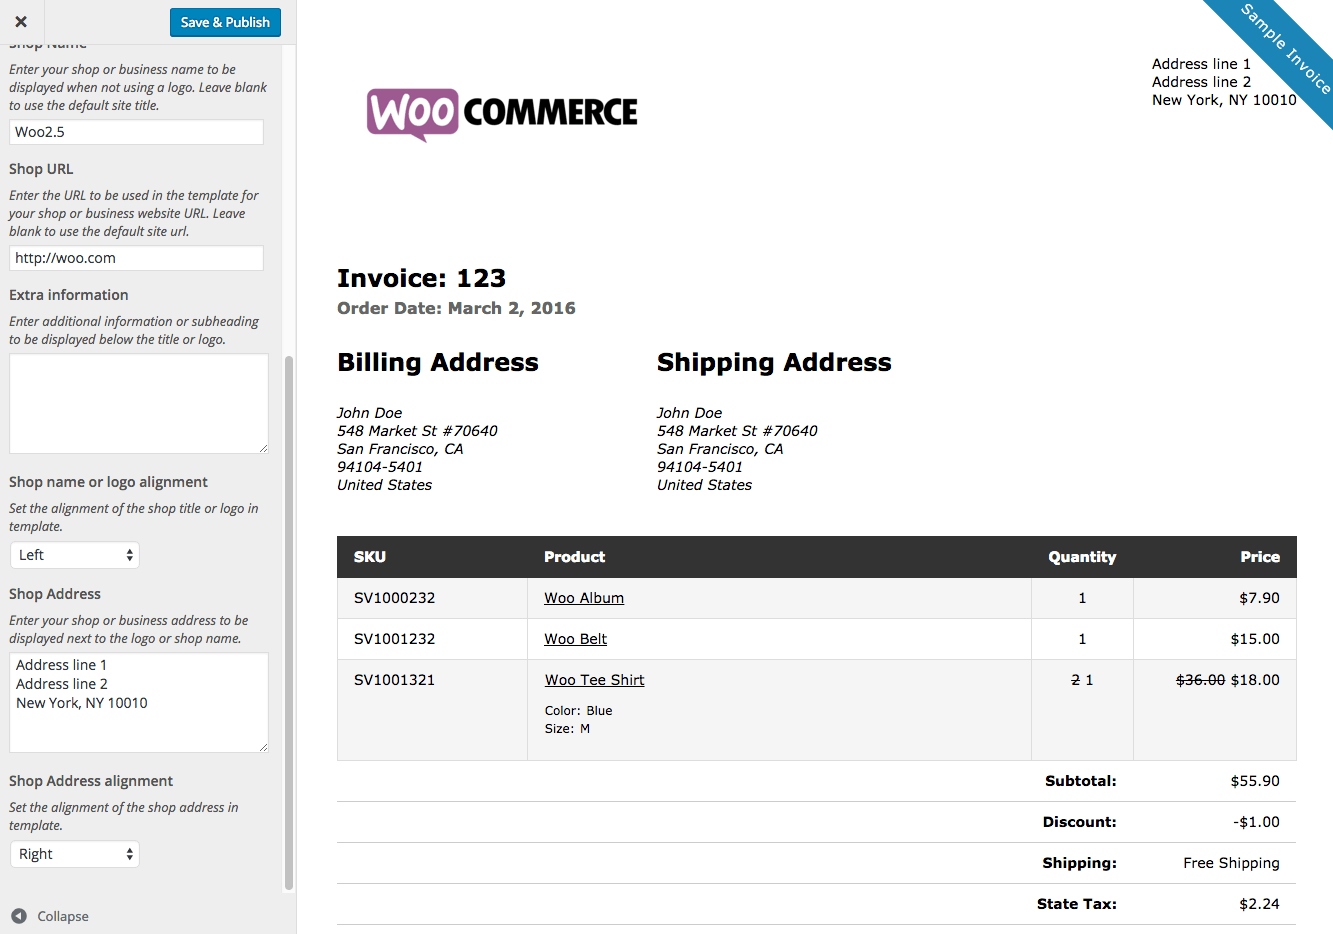 Pigbrotherus  Nice Woocommerce Print Invoices Amp Packing Lists  Woocommerce Docs With Extraordinary Woocommerce Print Invoices  Packing Lists Customizer With Amusing Create Sales Receipt Also Printable Rental Receipts In Addition How To Write A Receipt For A Donation And Af  Hand Receipt As Well As Proof Of Purchase Without Receipt Additionally Employee Handbook Receipt From Docswoocommercecom With Pigbrotherus  Extraordinary Woocommerce Print Invoices Amp Packing Lists  Woocommerce Docs With Amusing Woocommerce Print Invoices  Packing Lists Customizer And Nice Create Sales Receipt Also Printable Rental Receipts In Addition How To Write A Receipt For A Donation From Docswoocommercecom